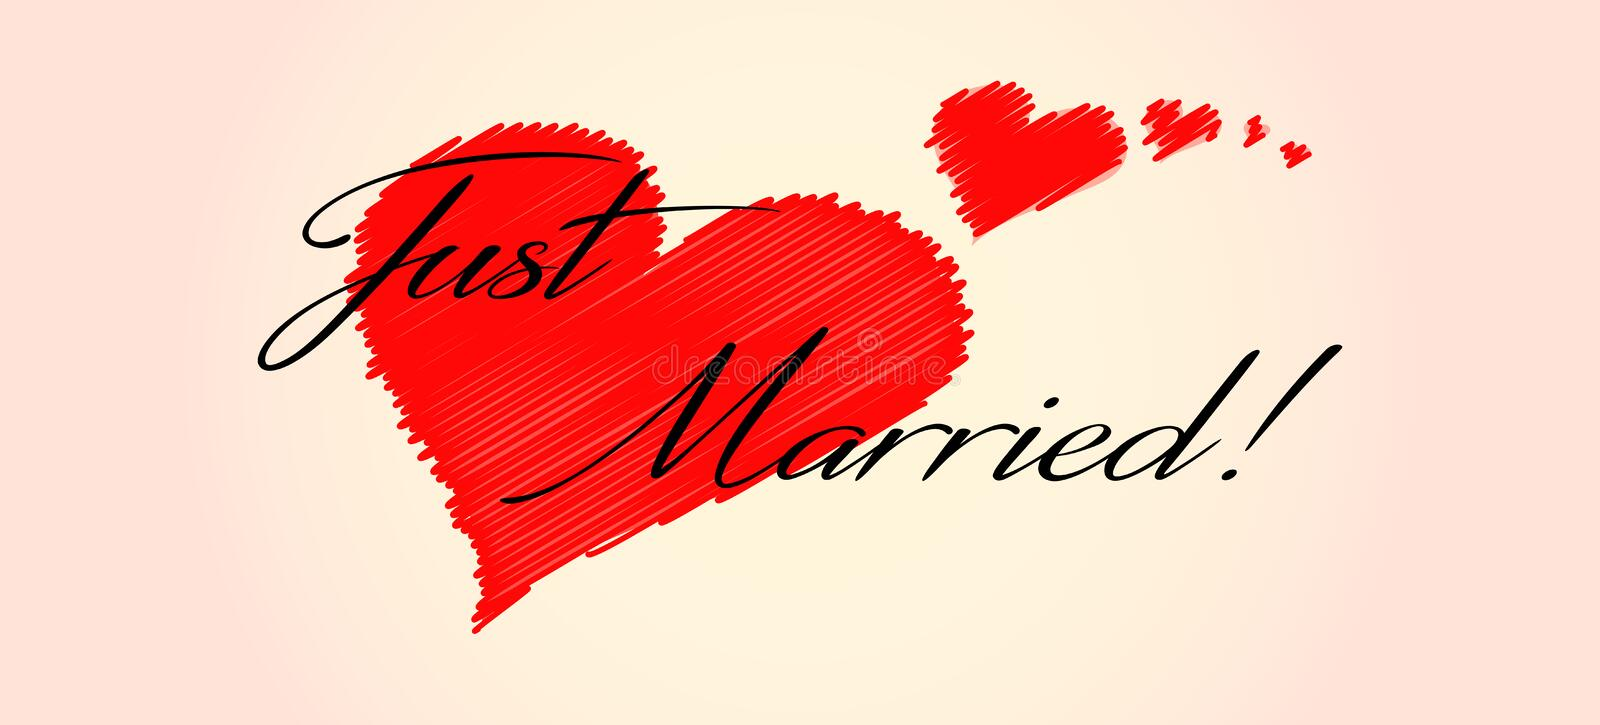 Just married! with red hearts flying. A banner with the write Just Married! and flying red hearts, on a soft pink gradient background royalty free illustration